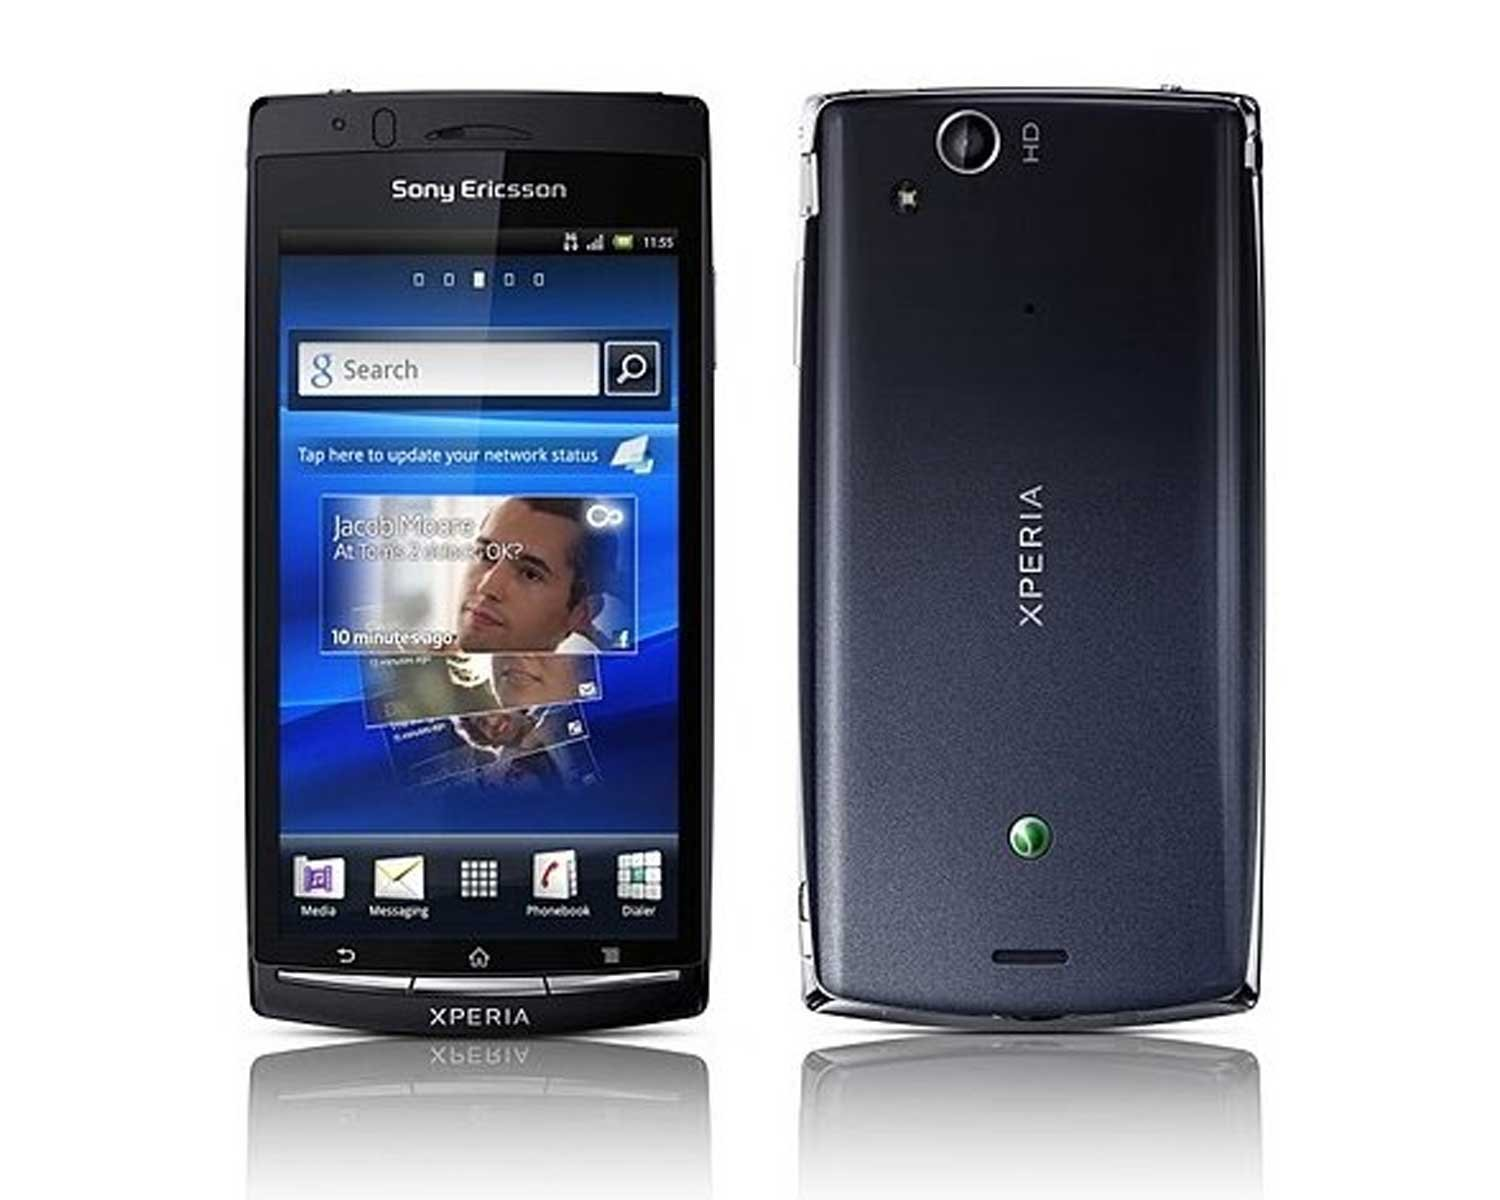 Amazon.com: Sony Ericsson Xperia Arc S / LT18i (BLACK) / Unlocked  International Gsm Phone: Cell Phones & Accessories